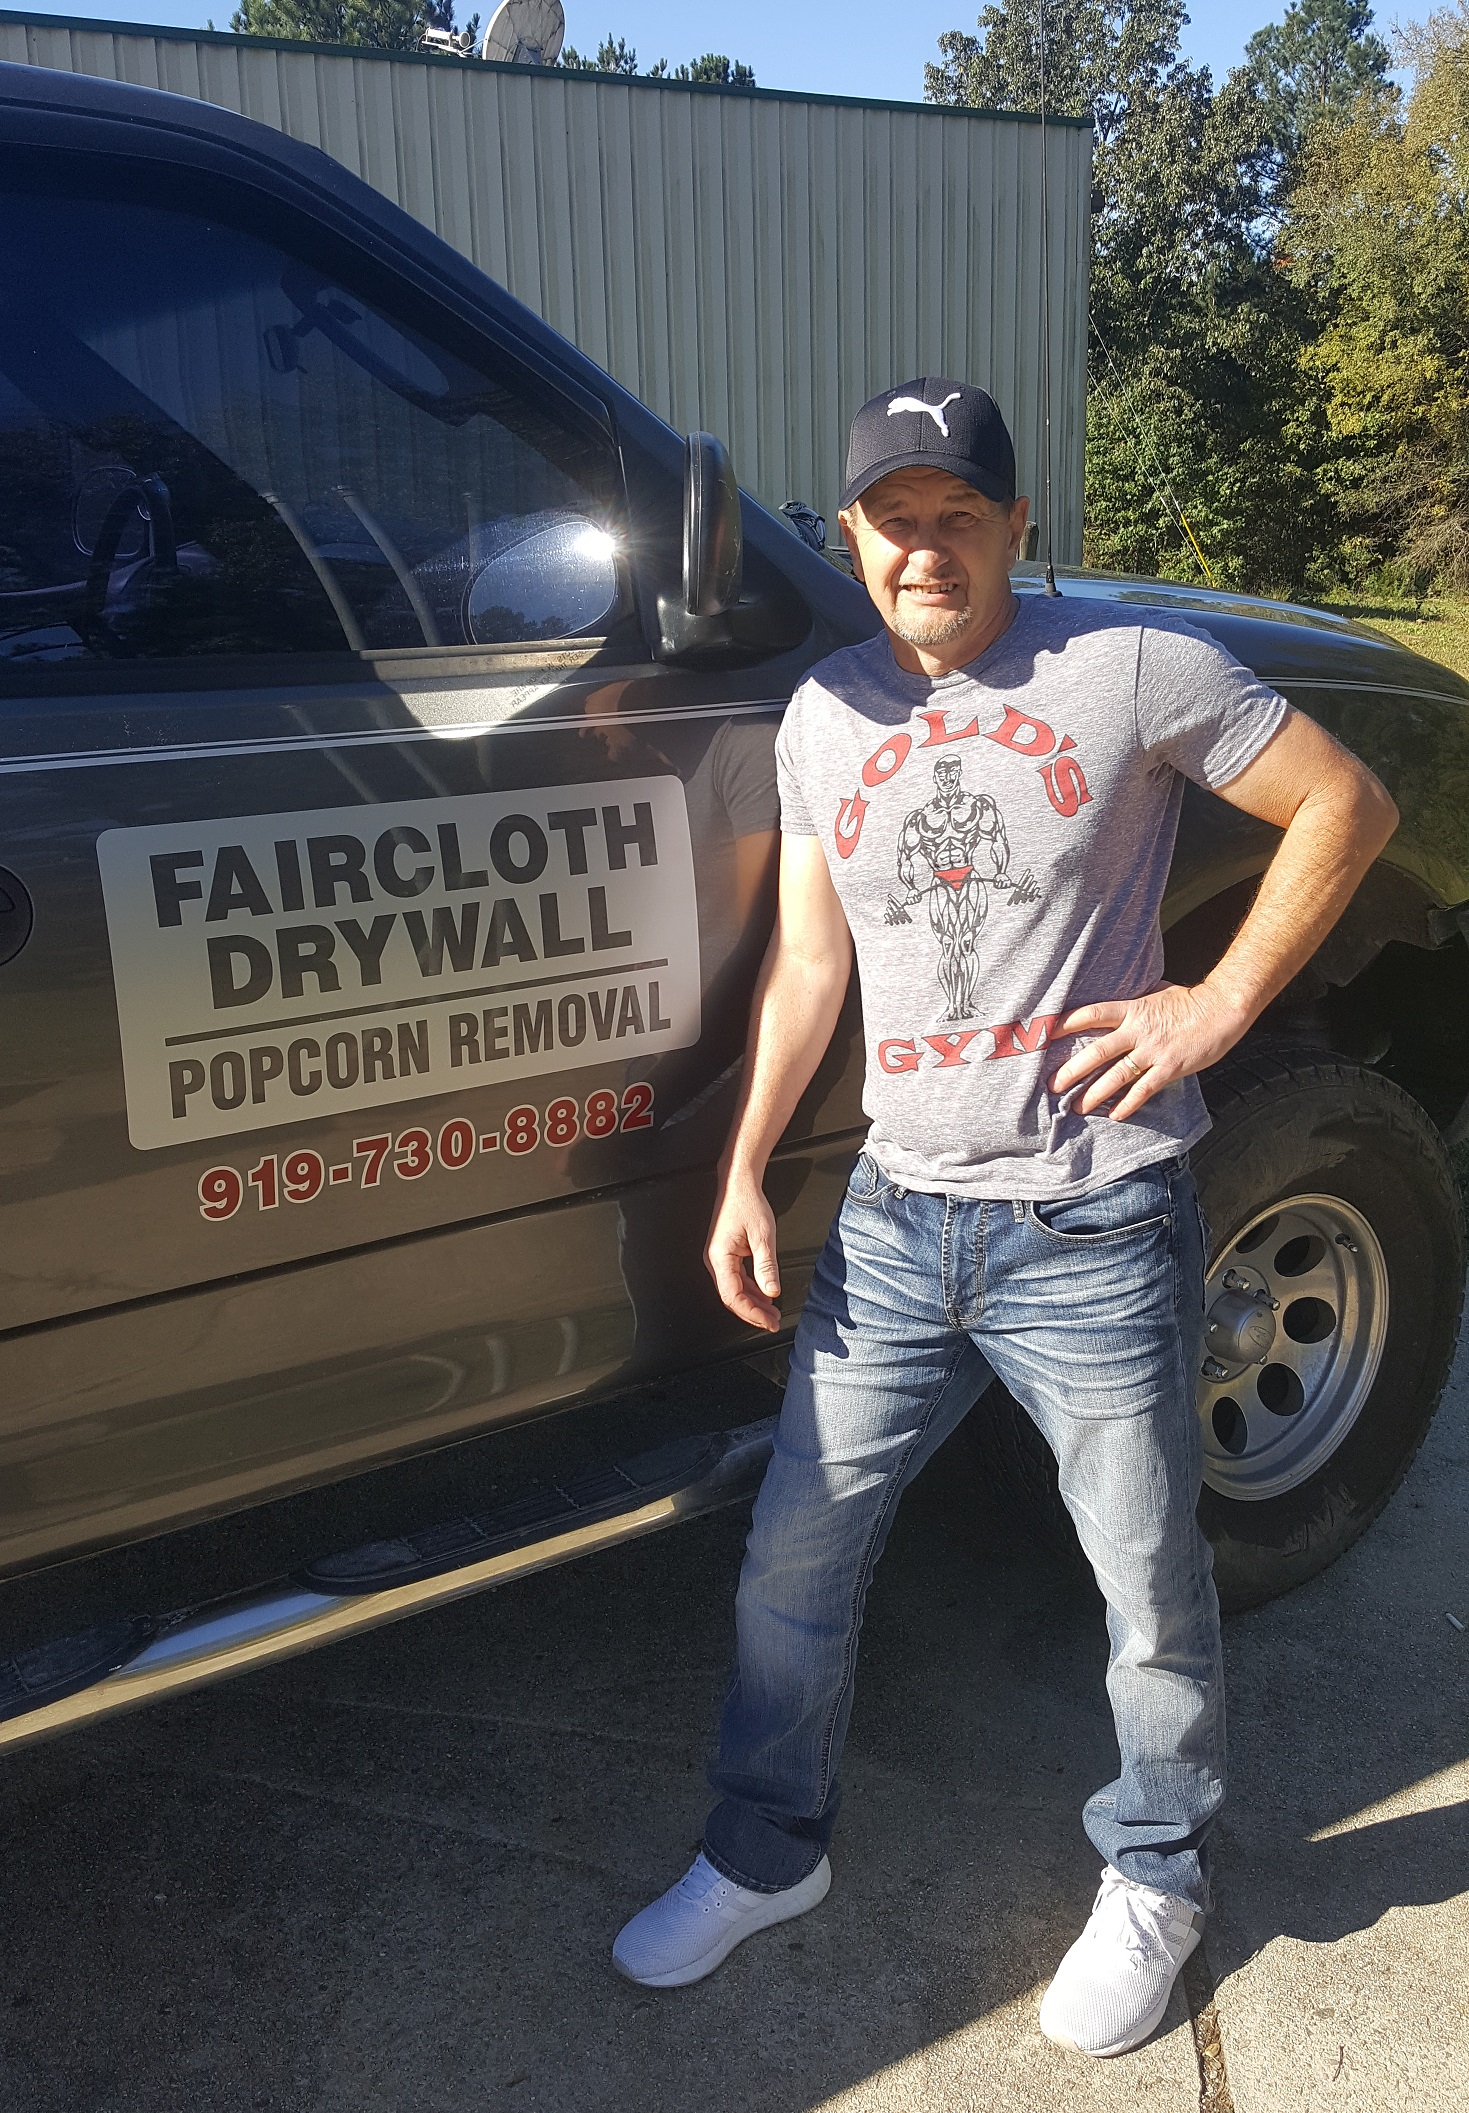 Popcorn Texture Removal Expert Mike Faircloth of Faircloth Drywall